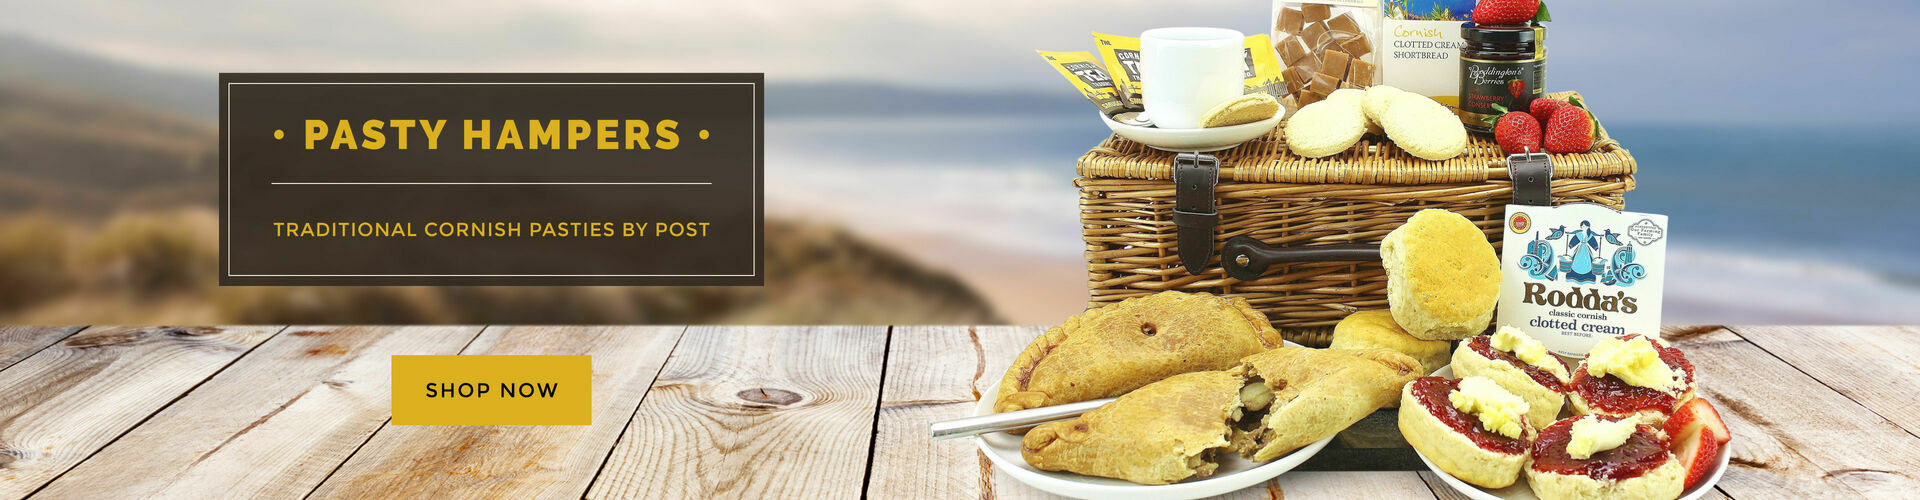 Cornish Pasty Hampers